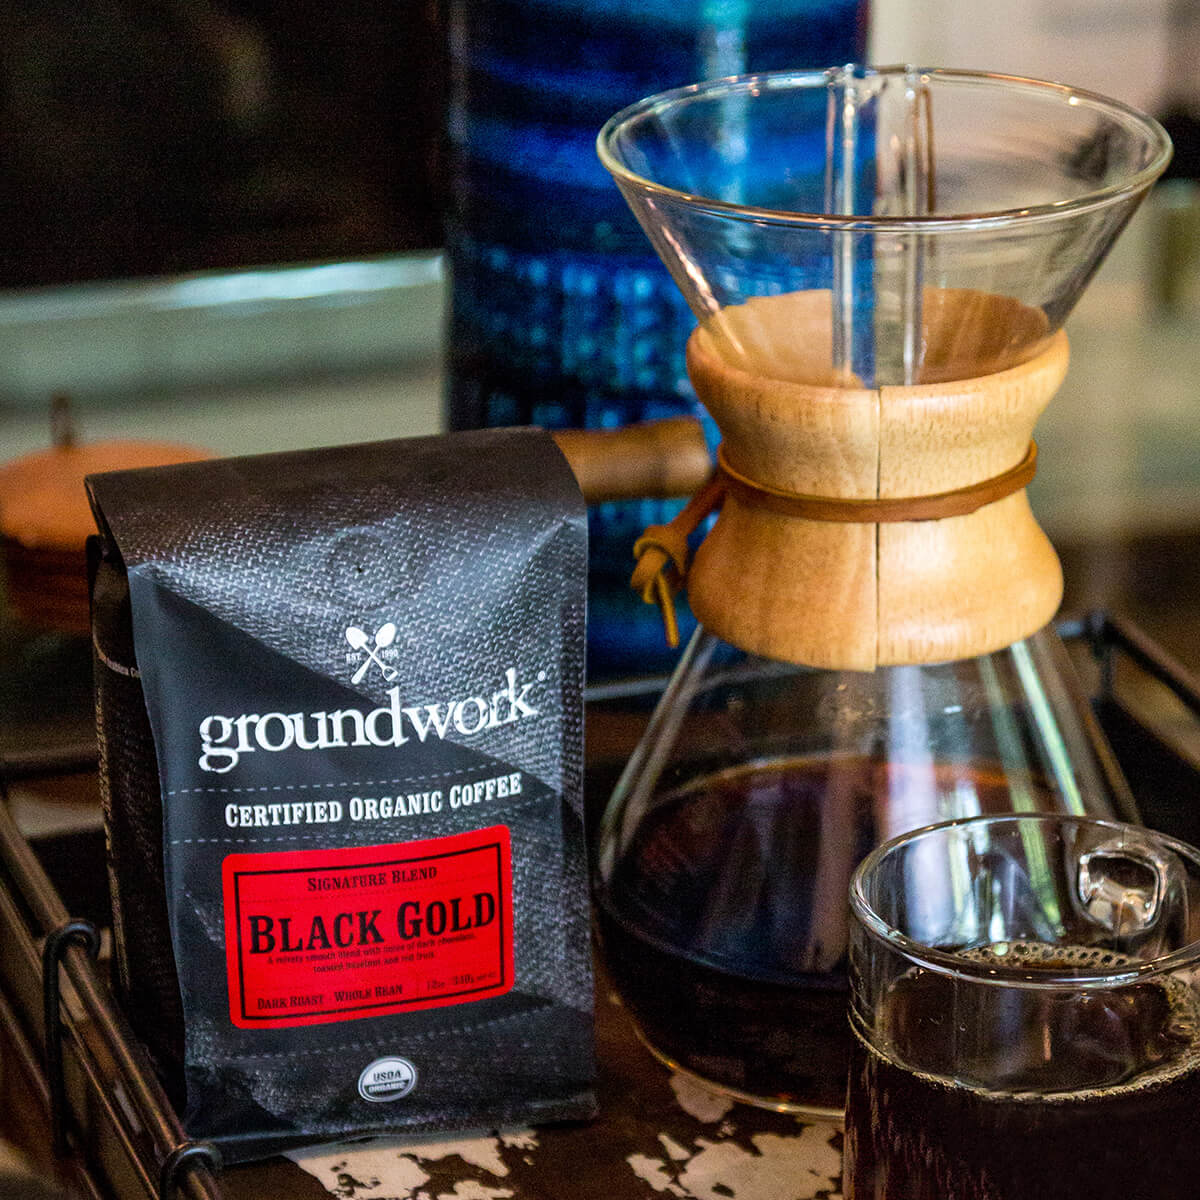 bag of Groundwork Black Gold coffee